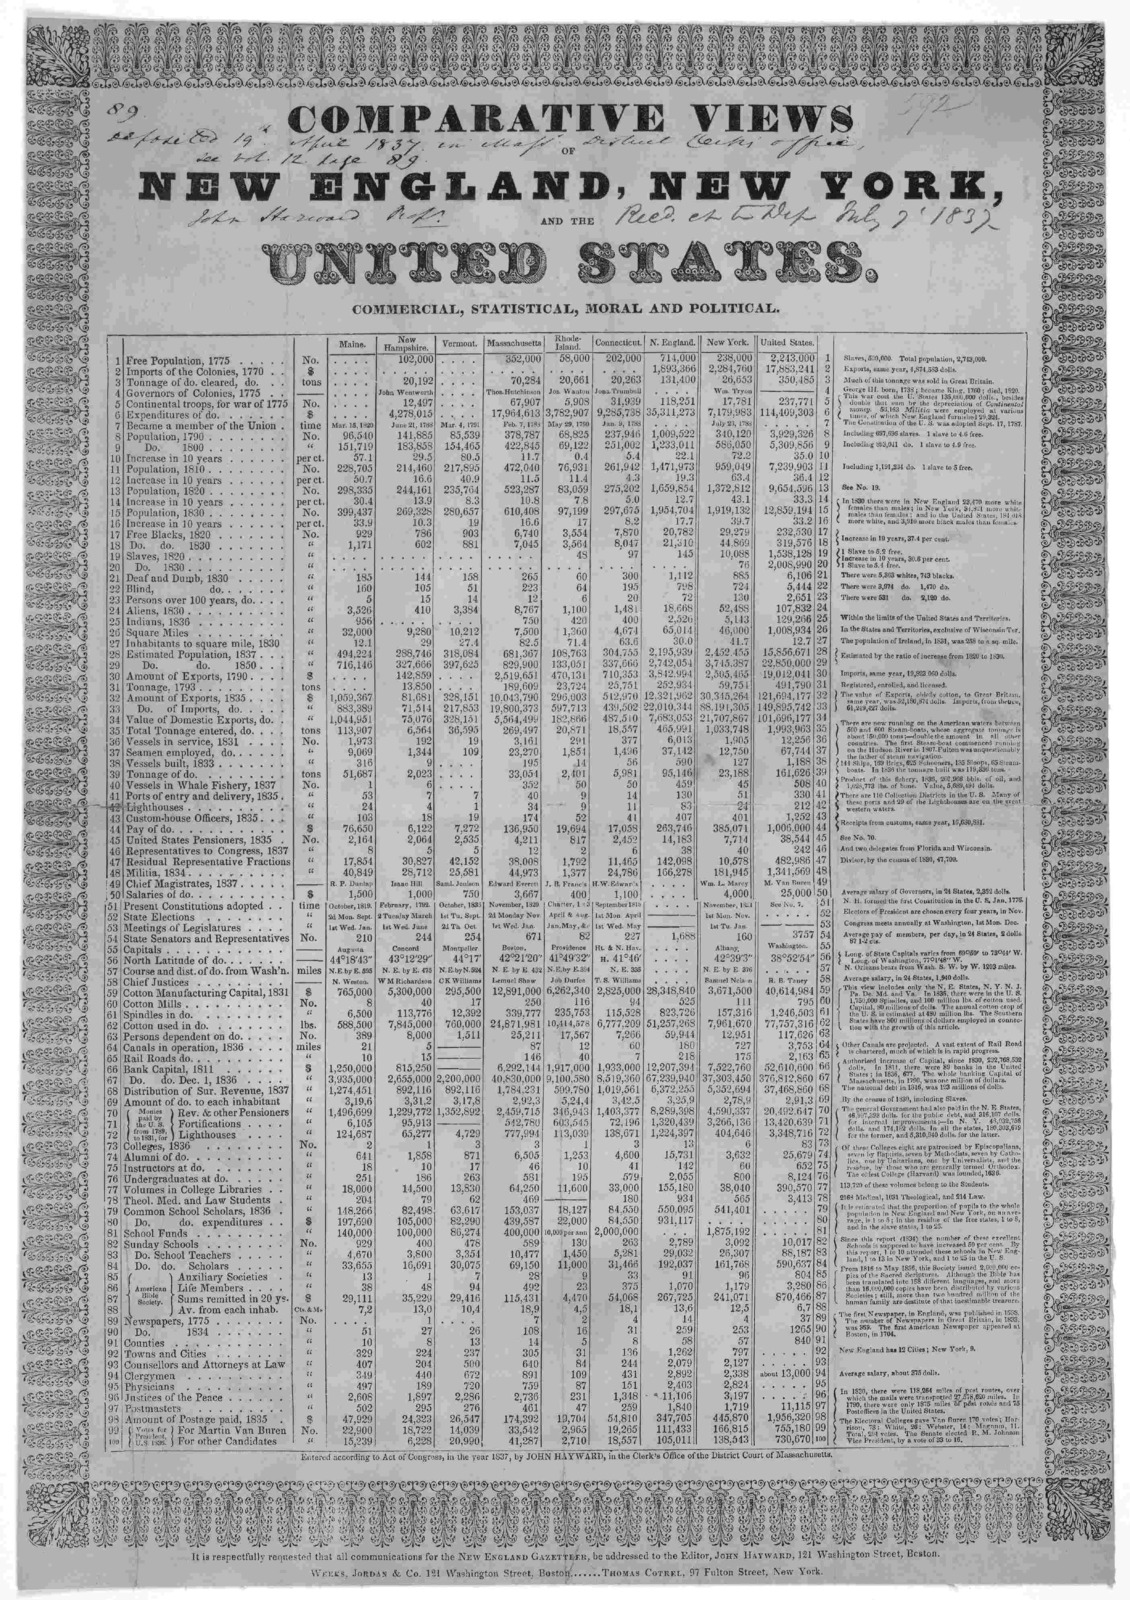 [ornamental border] Comparative views of New England, New York, and the United States. Commercial, statistical, moral and political. Boston, 1837.